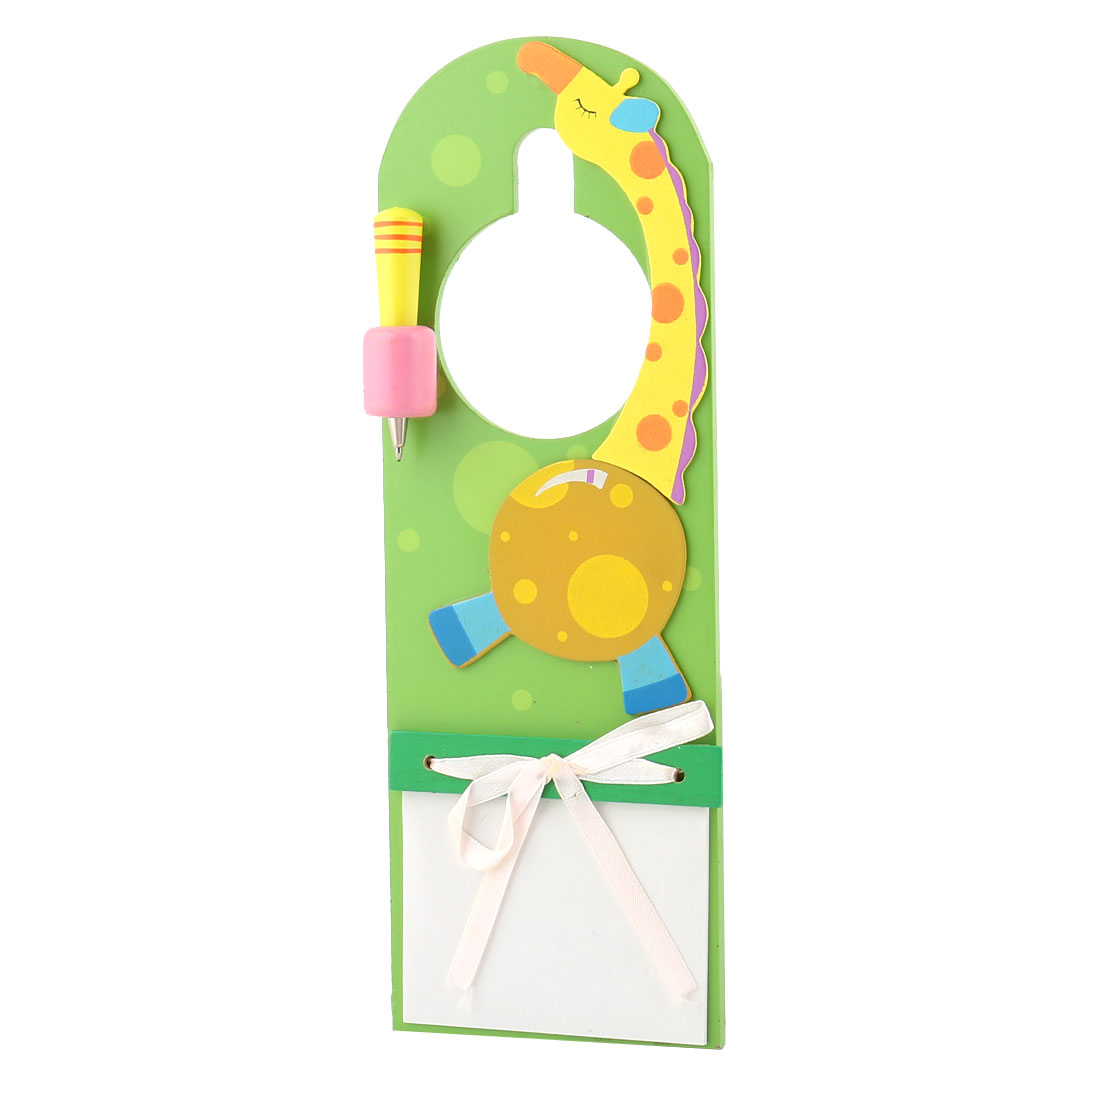 Cute Caterpillar Note Message Board Home Decor